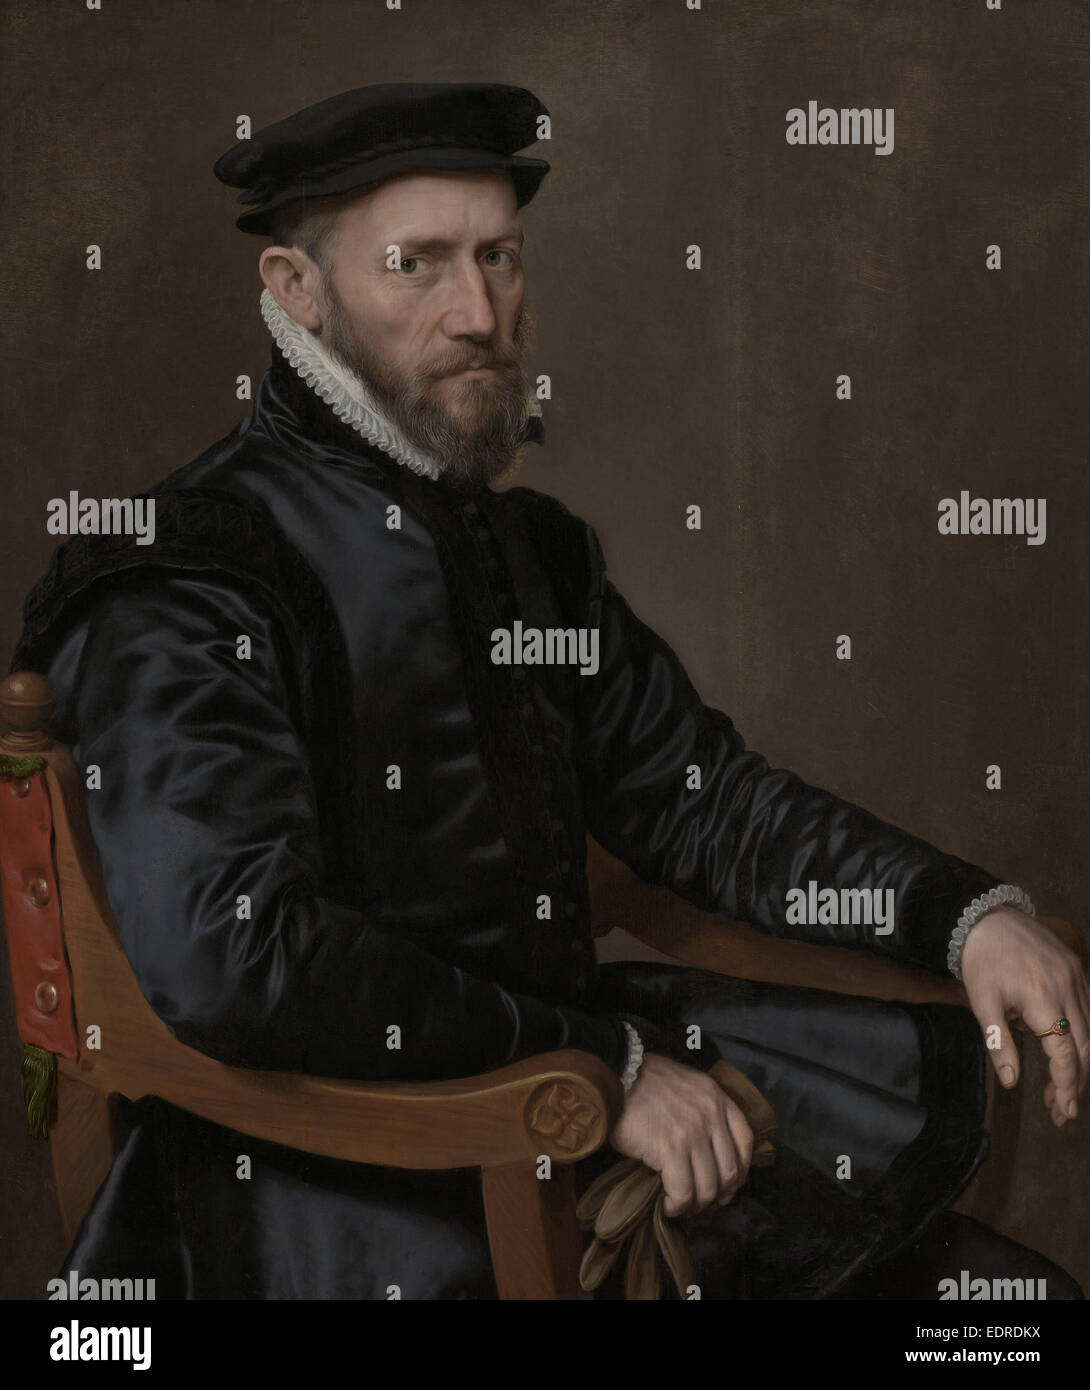 Portraits of Sir Thomas Gresham and Anne Fernely, Anthonis Mor, c. 1560 - c. 1565 - Stock Image